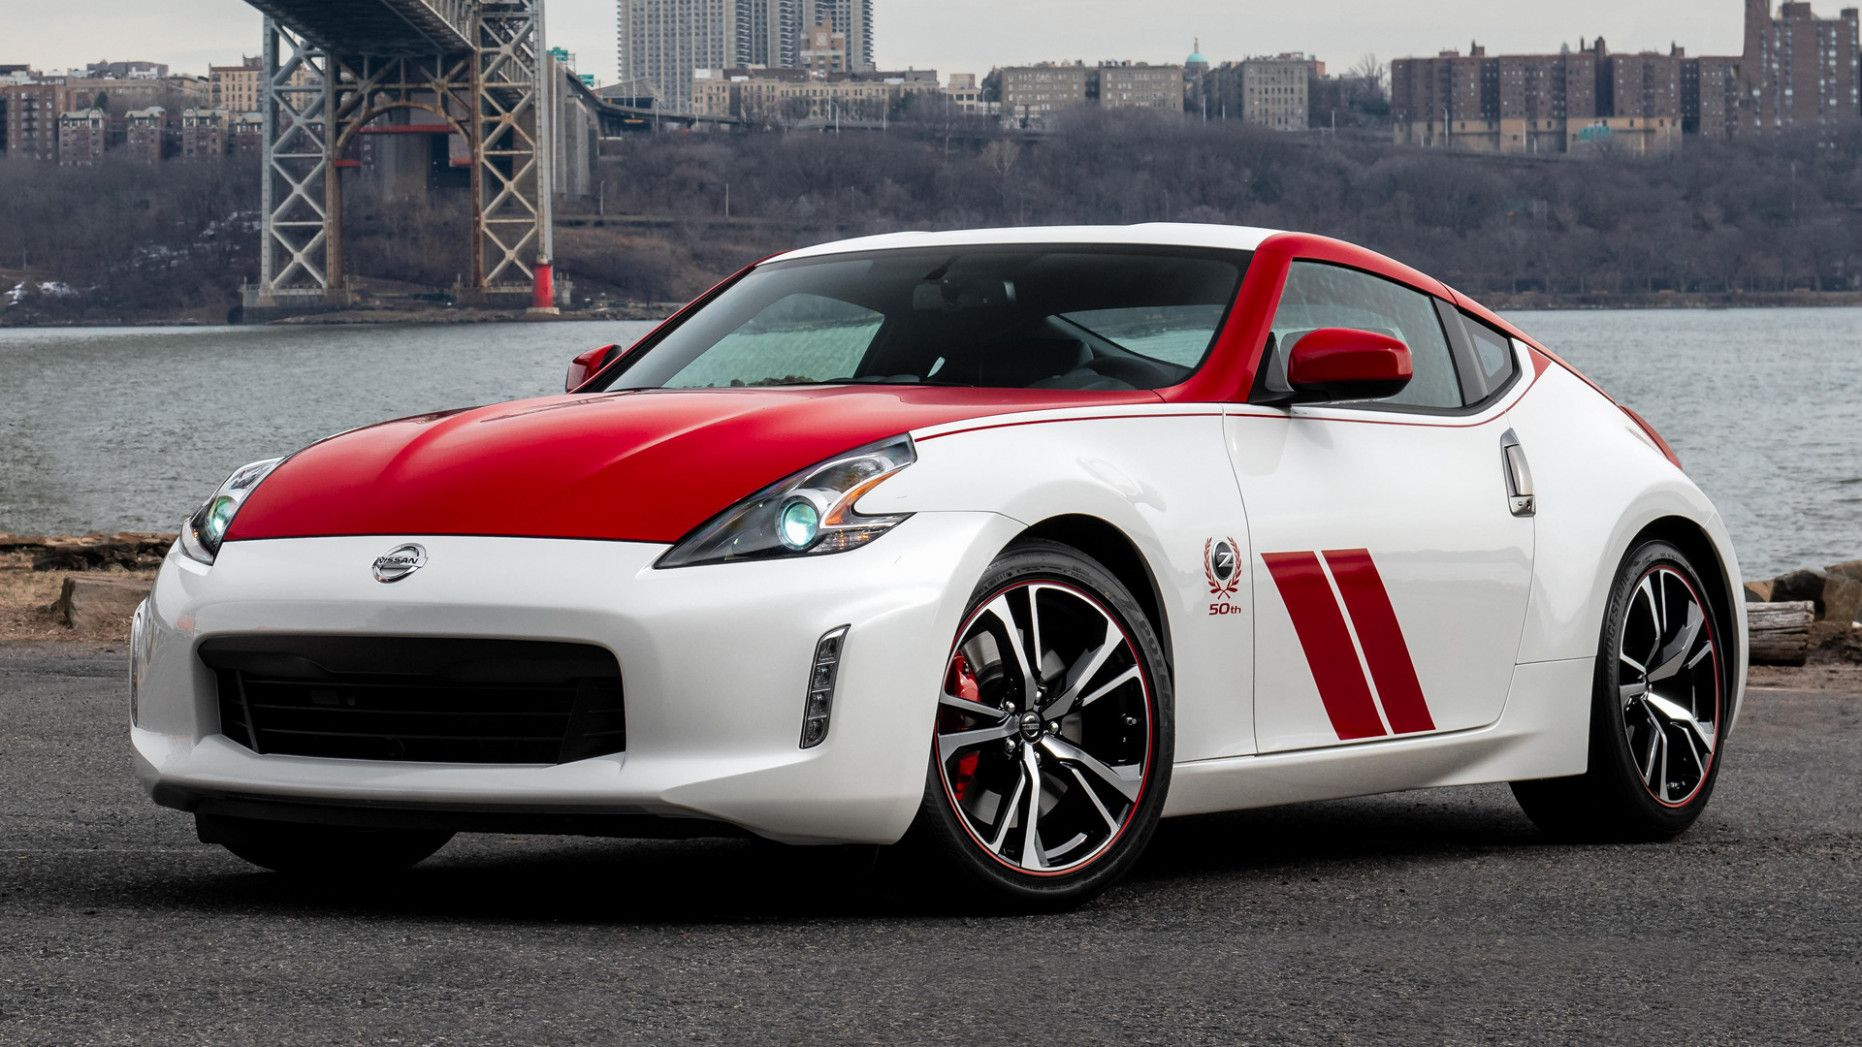 2020 Nissan 370z Redesign And Review In 2020 Nissan Nissan 370z 50th Anniversary